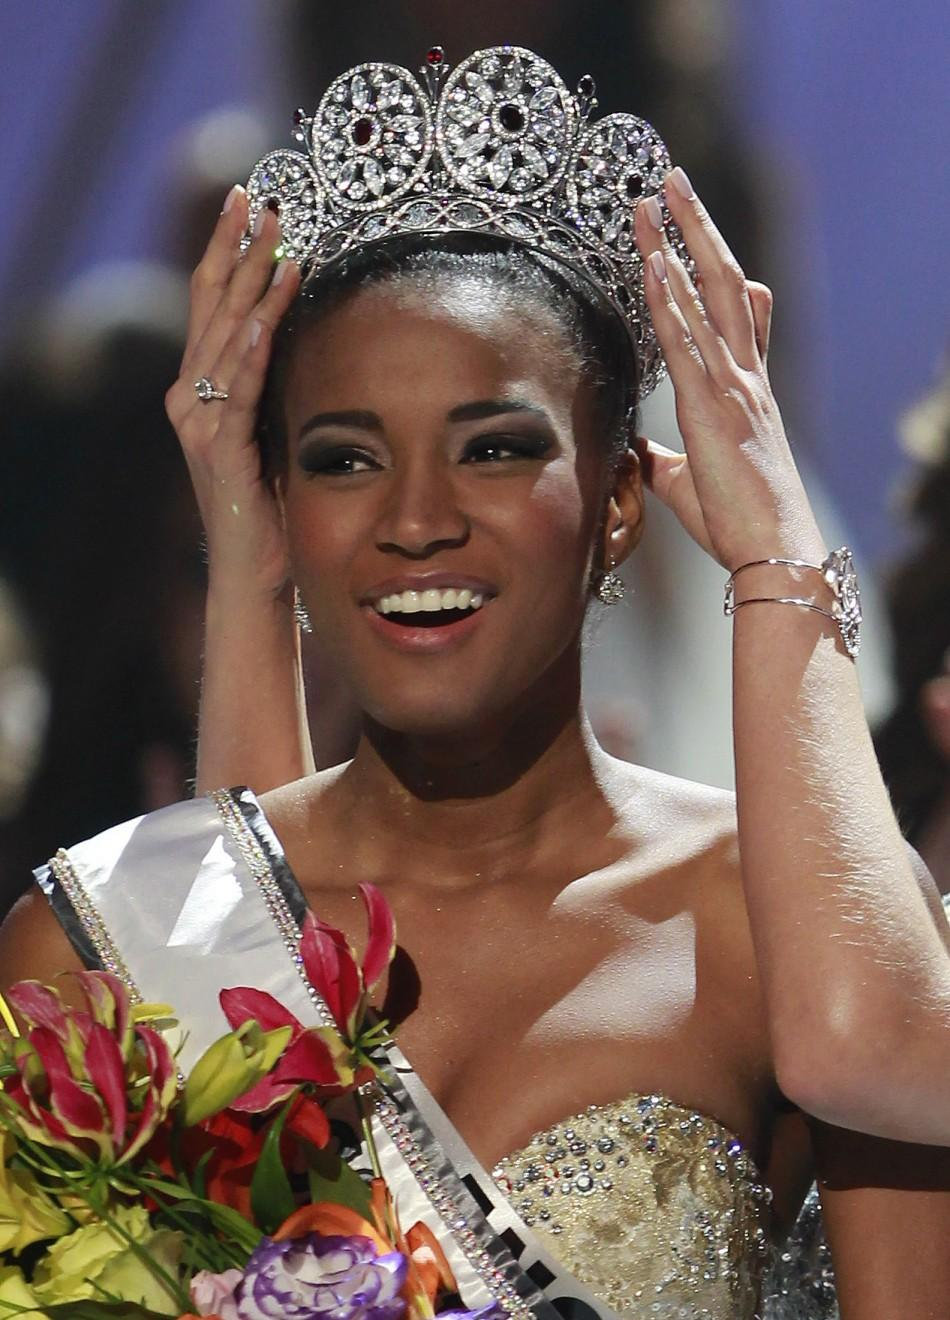 The Crowned Miss Universe Will Help in Fighting HIV